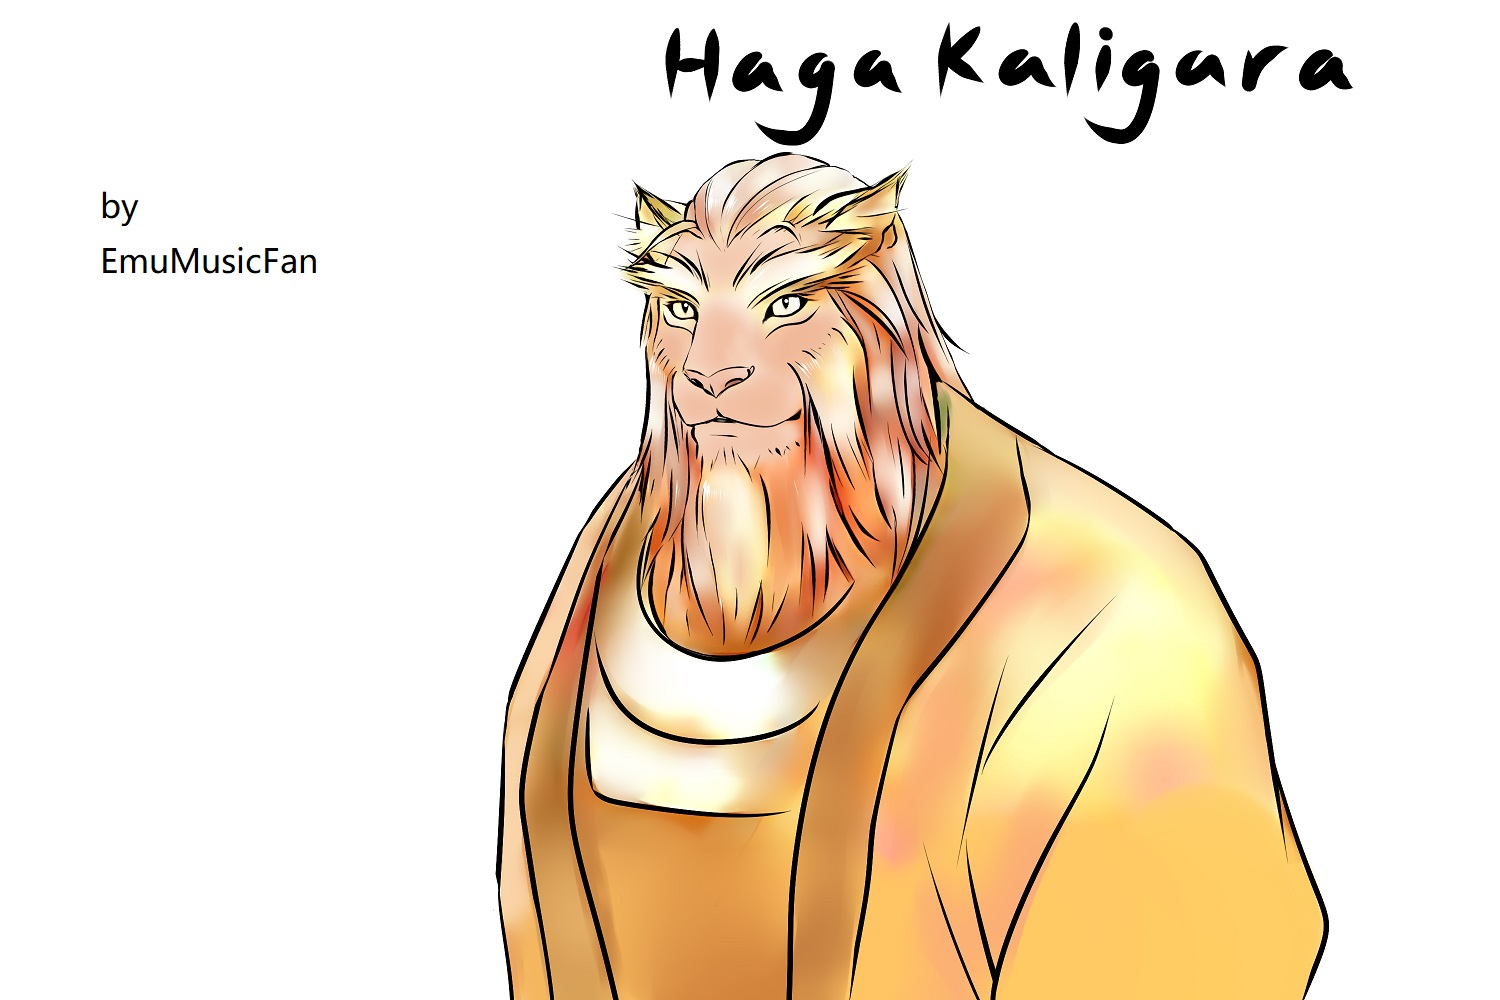 HagaKaligara_greeting1.jpg